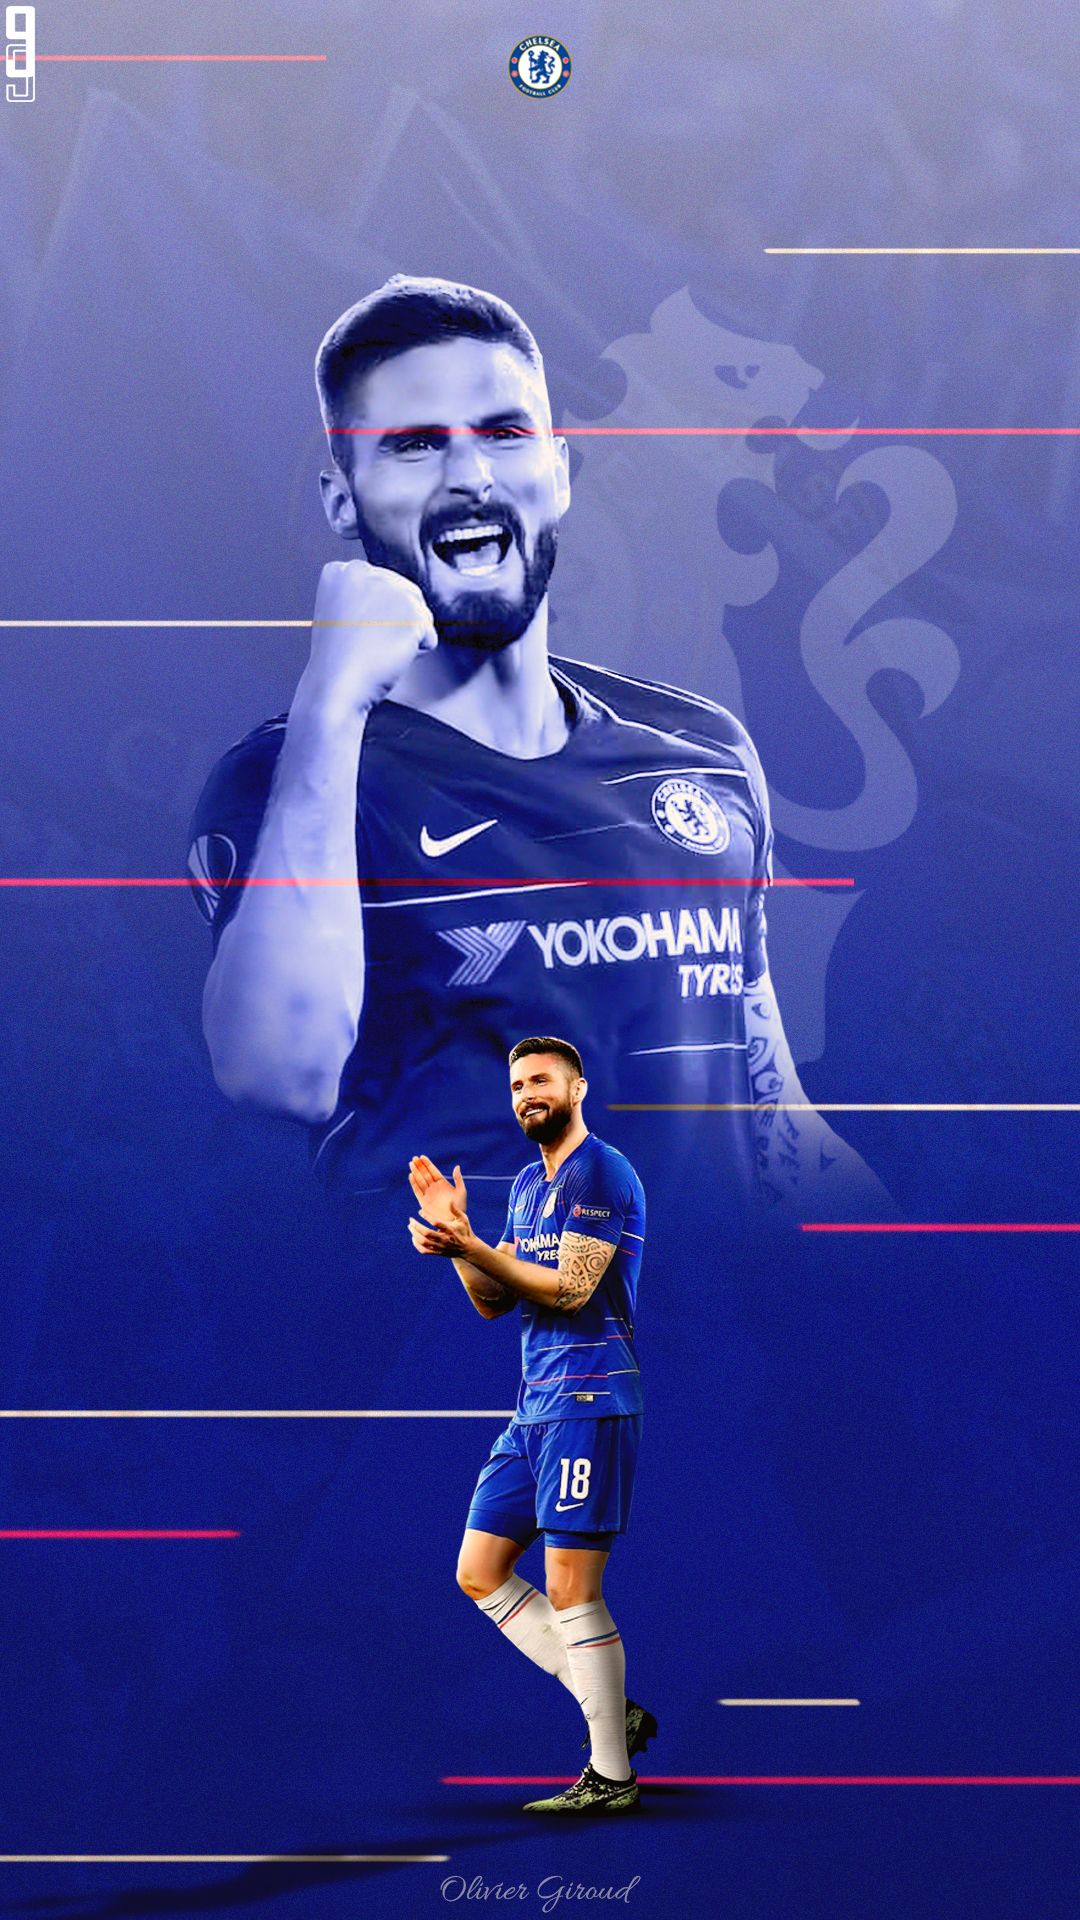 List of Good Looking Manchester United Wallpapers Blue Olivier Giroud | Chelsea FC